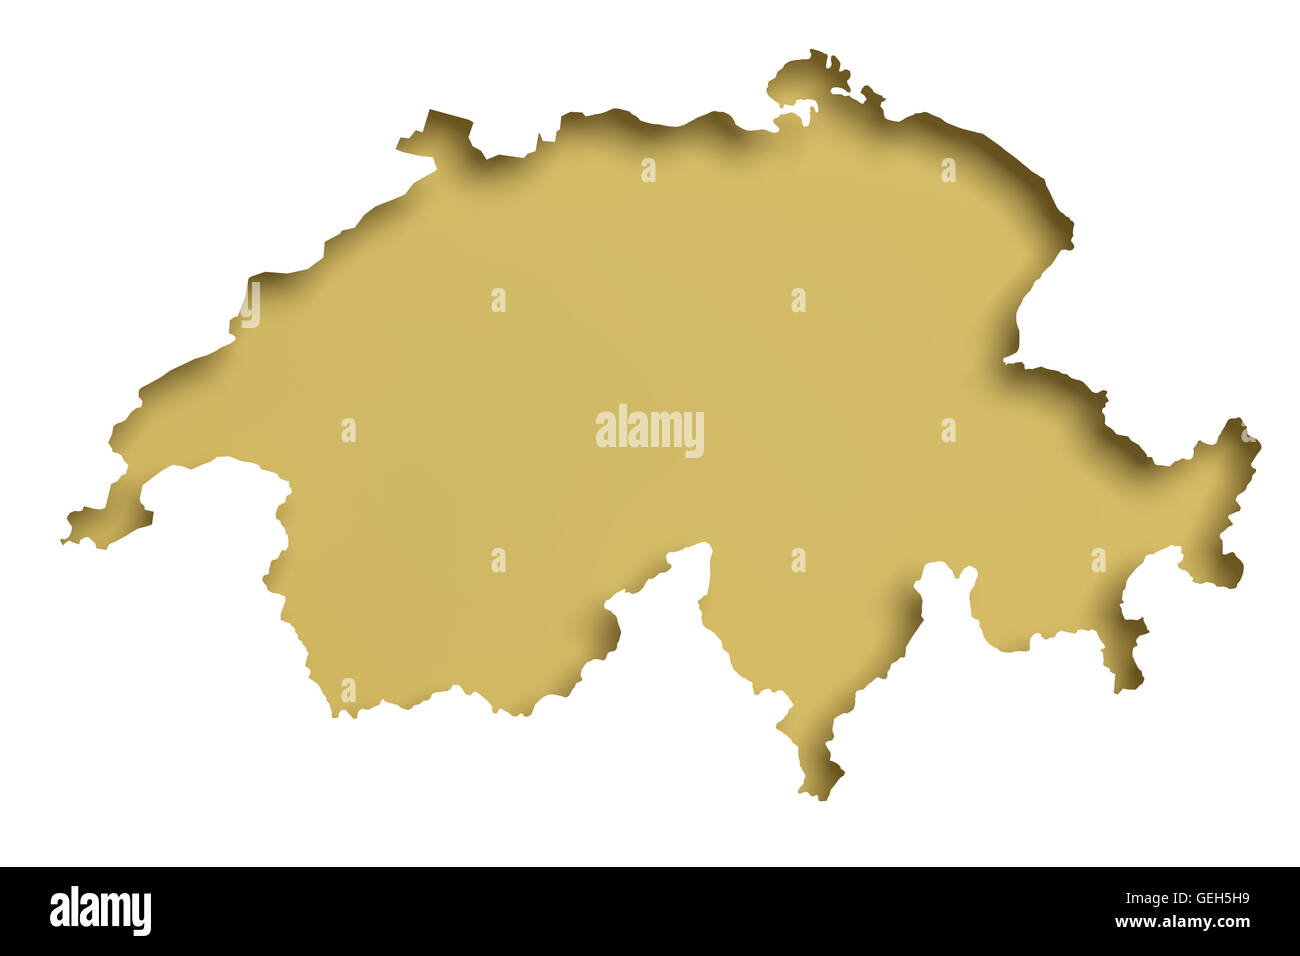 3d rendering of a Switzerland map on white background. - Stock Image